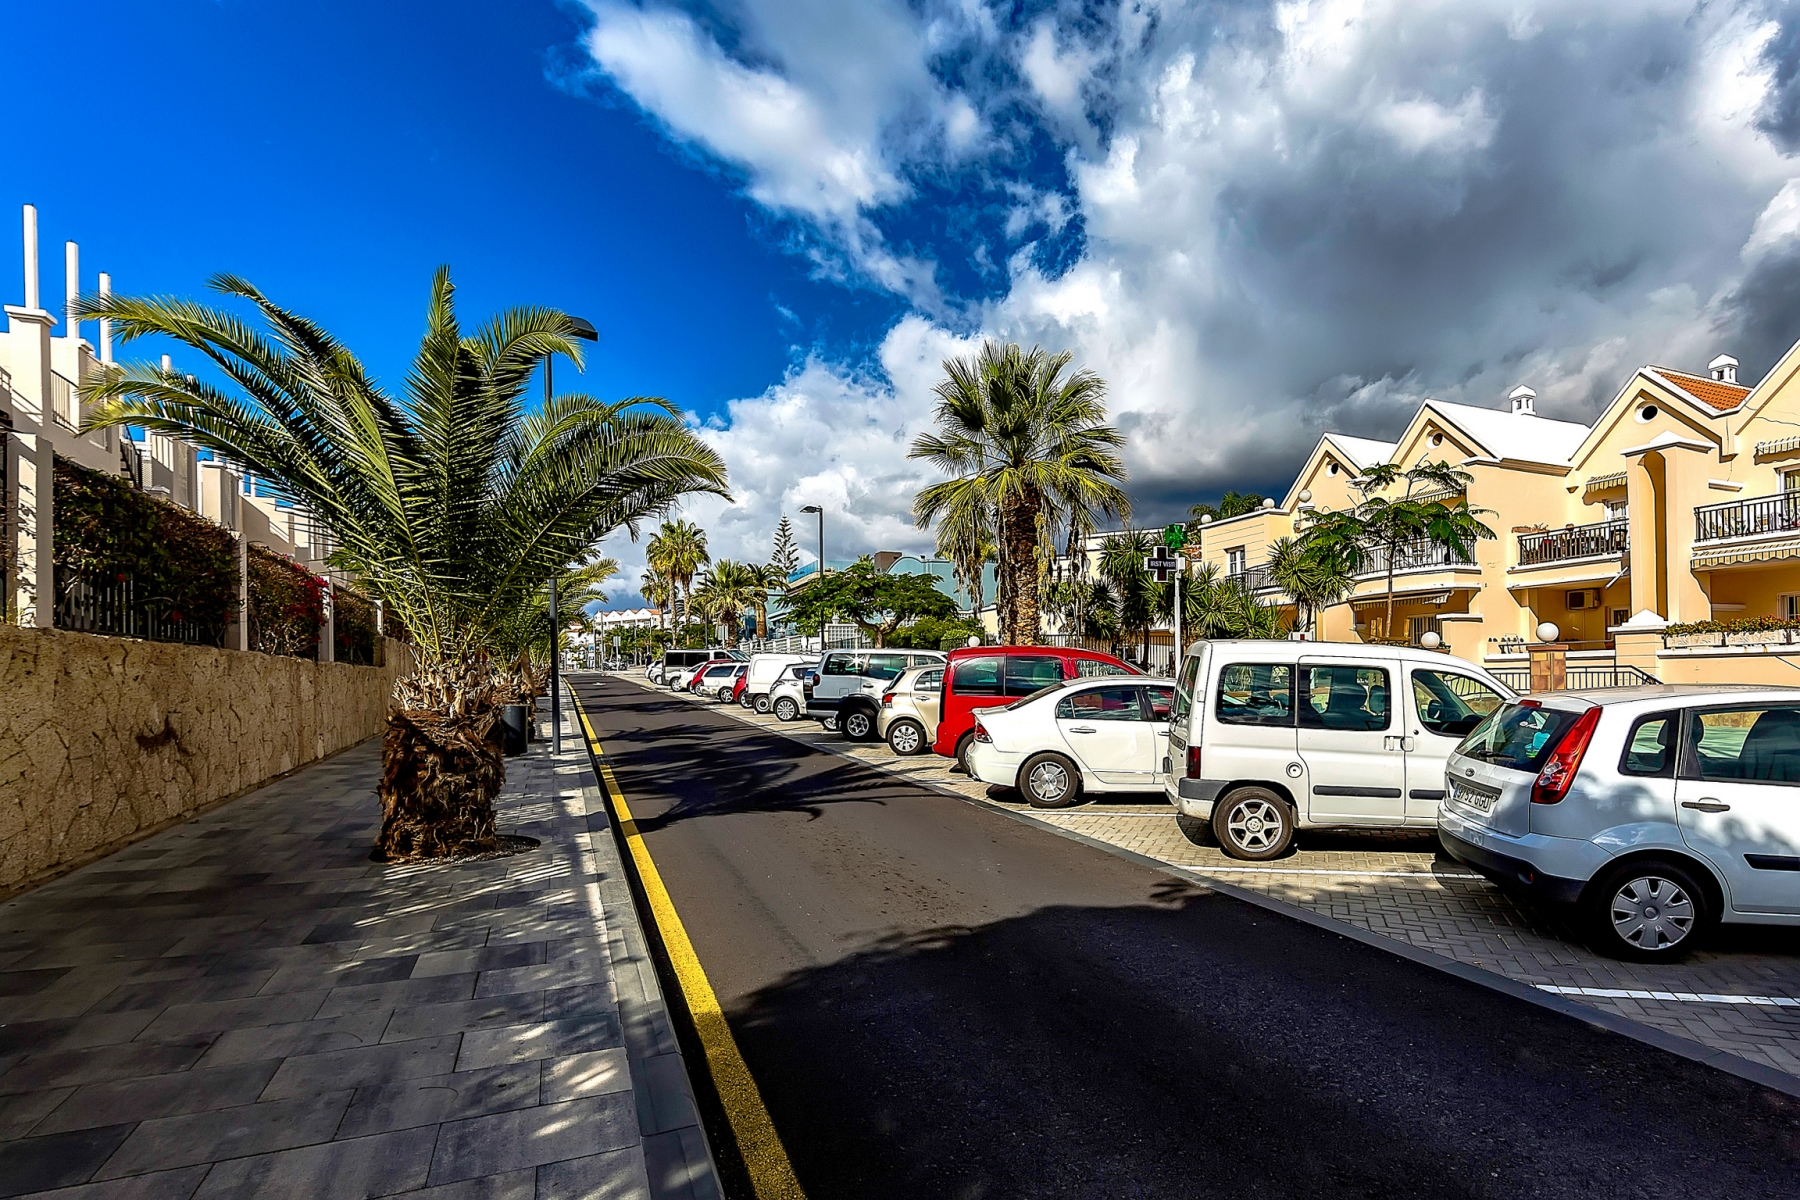 Properties for Sale in Tenerife, Canary Islands, Spain | SylkWayStar Real Estate. 1 bedroom apartment Yucca Park. Image-22548